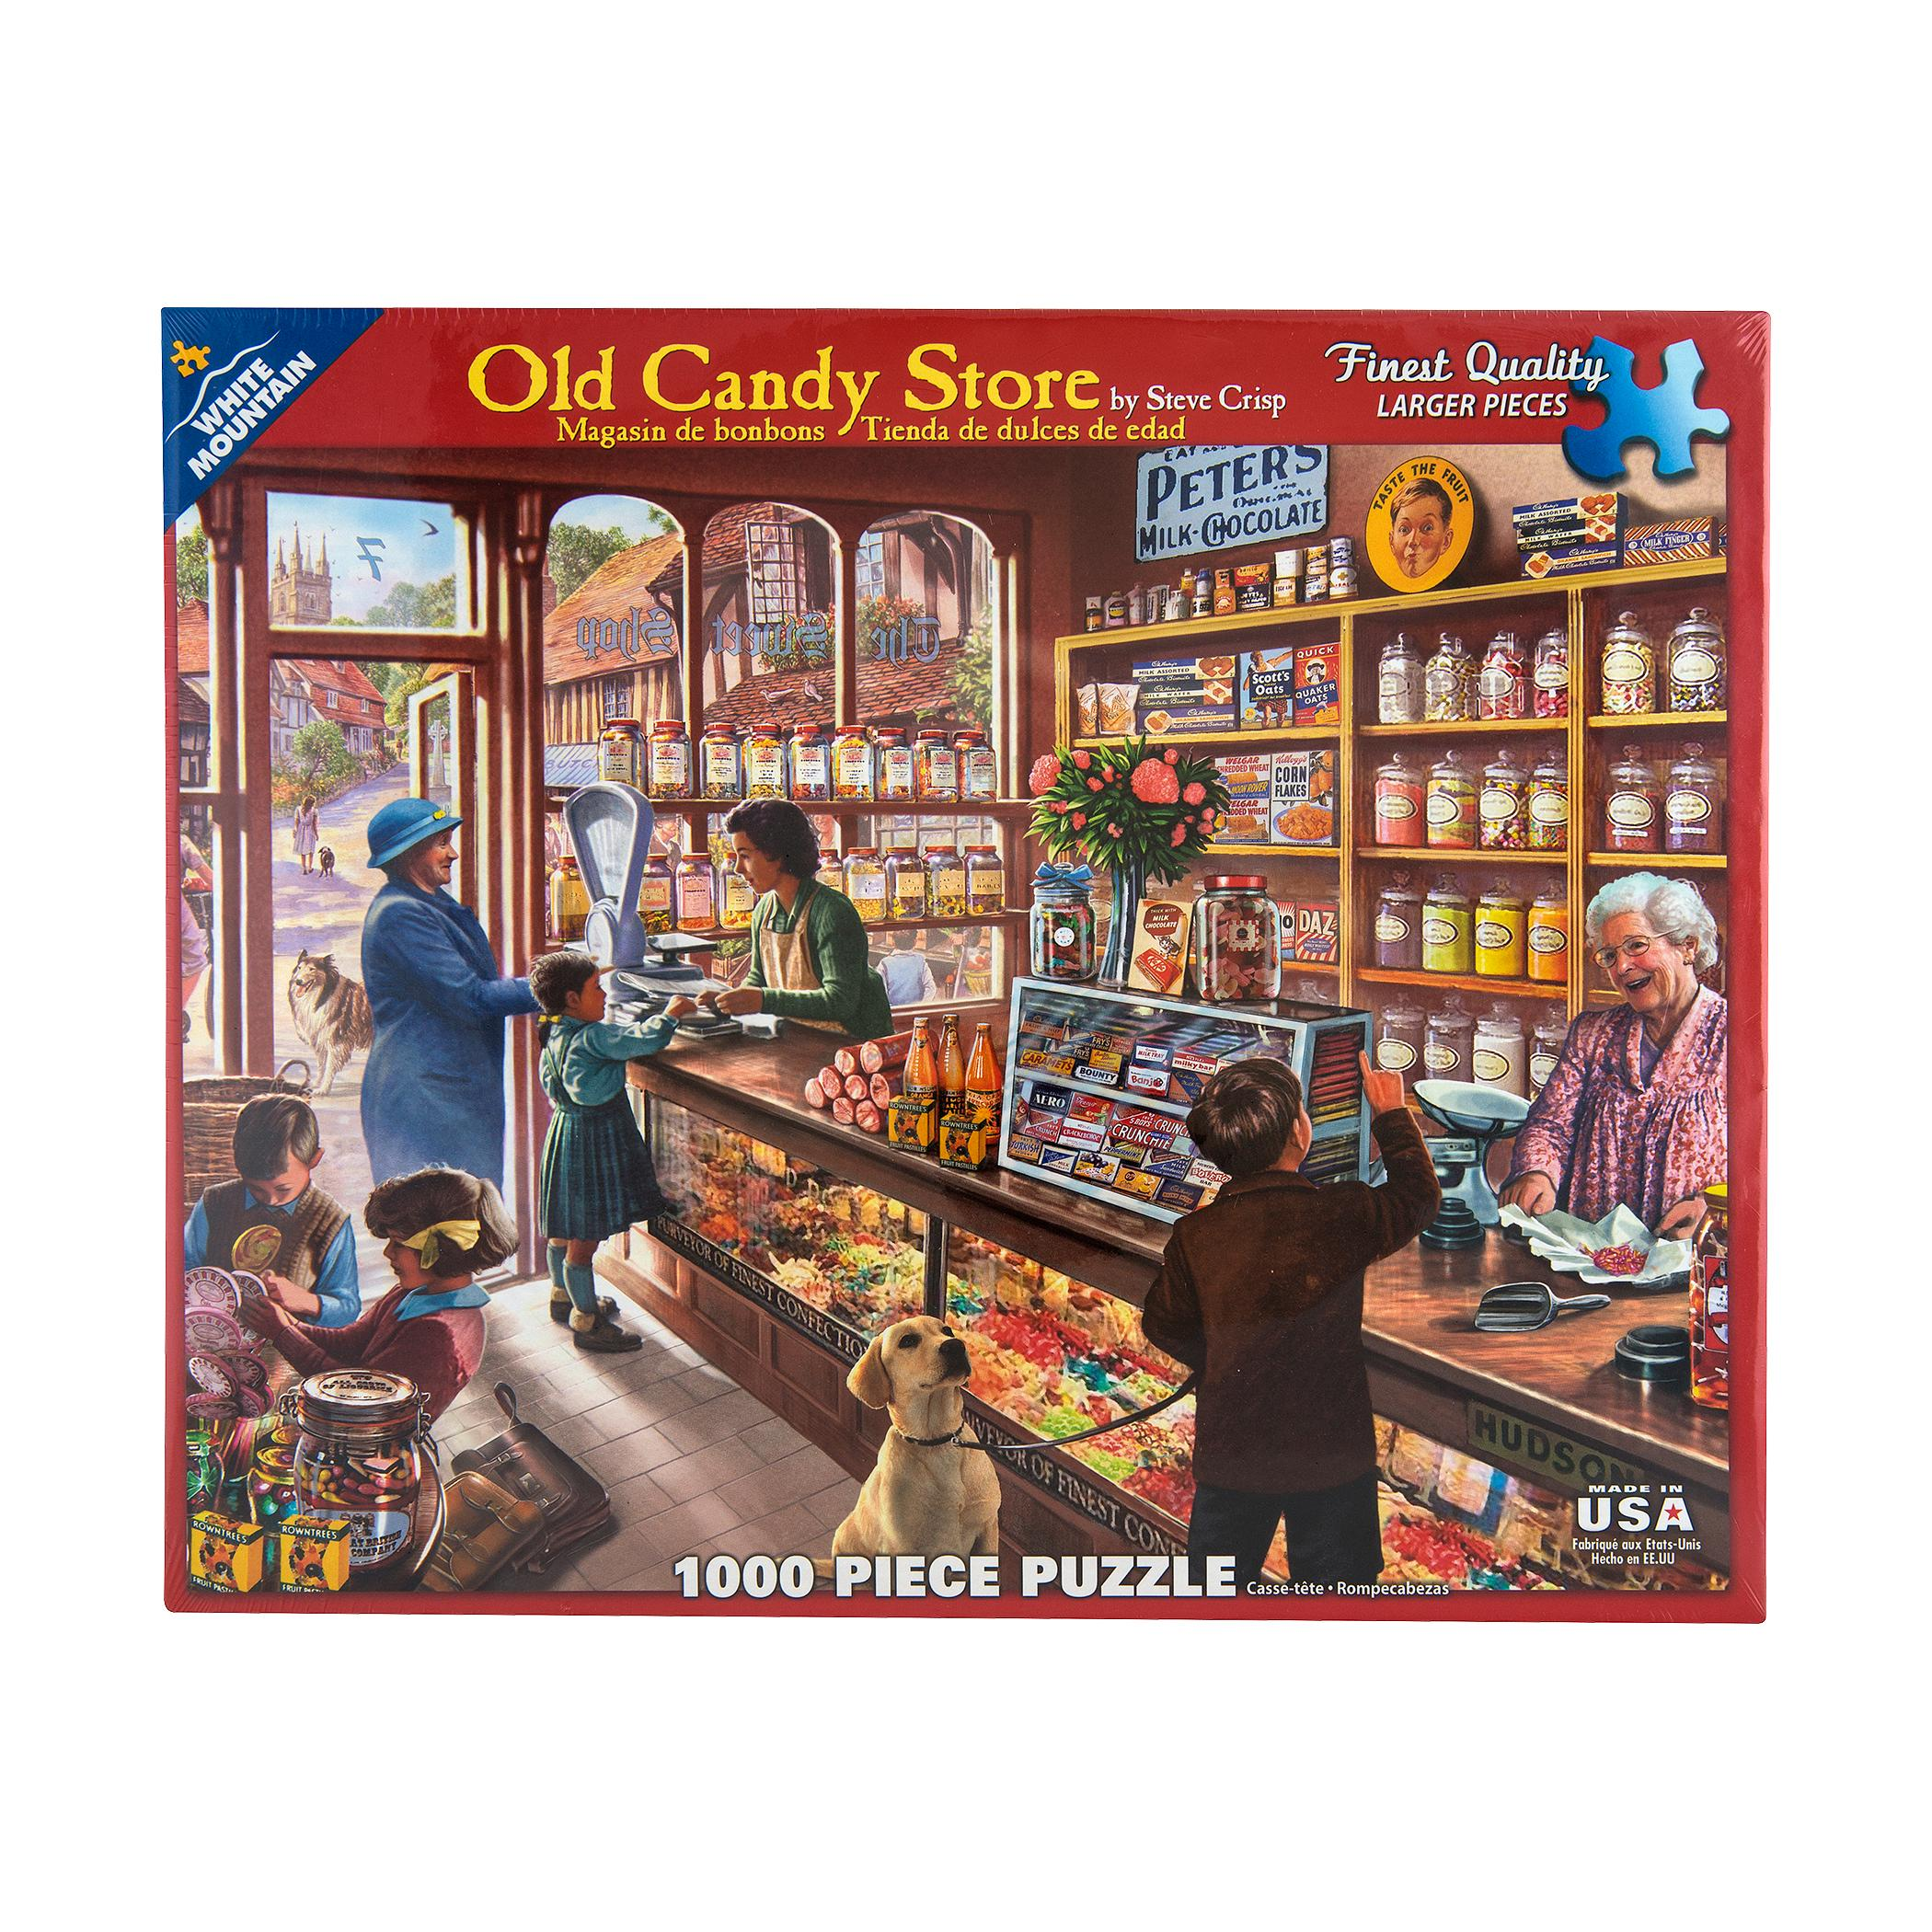 WHITE MTN PUZZLE | Puzzle - Old Candy Store | Mast General Store